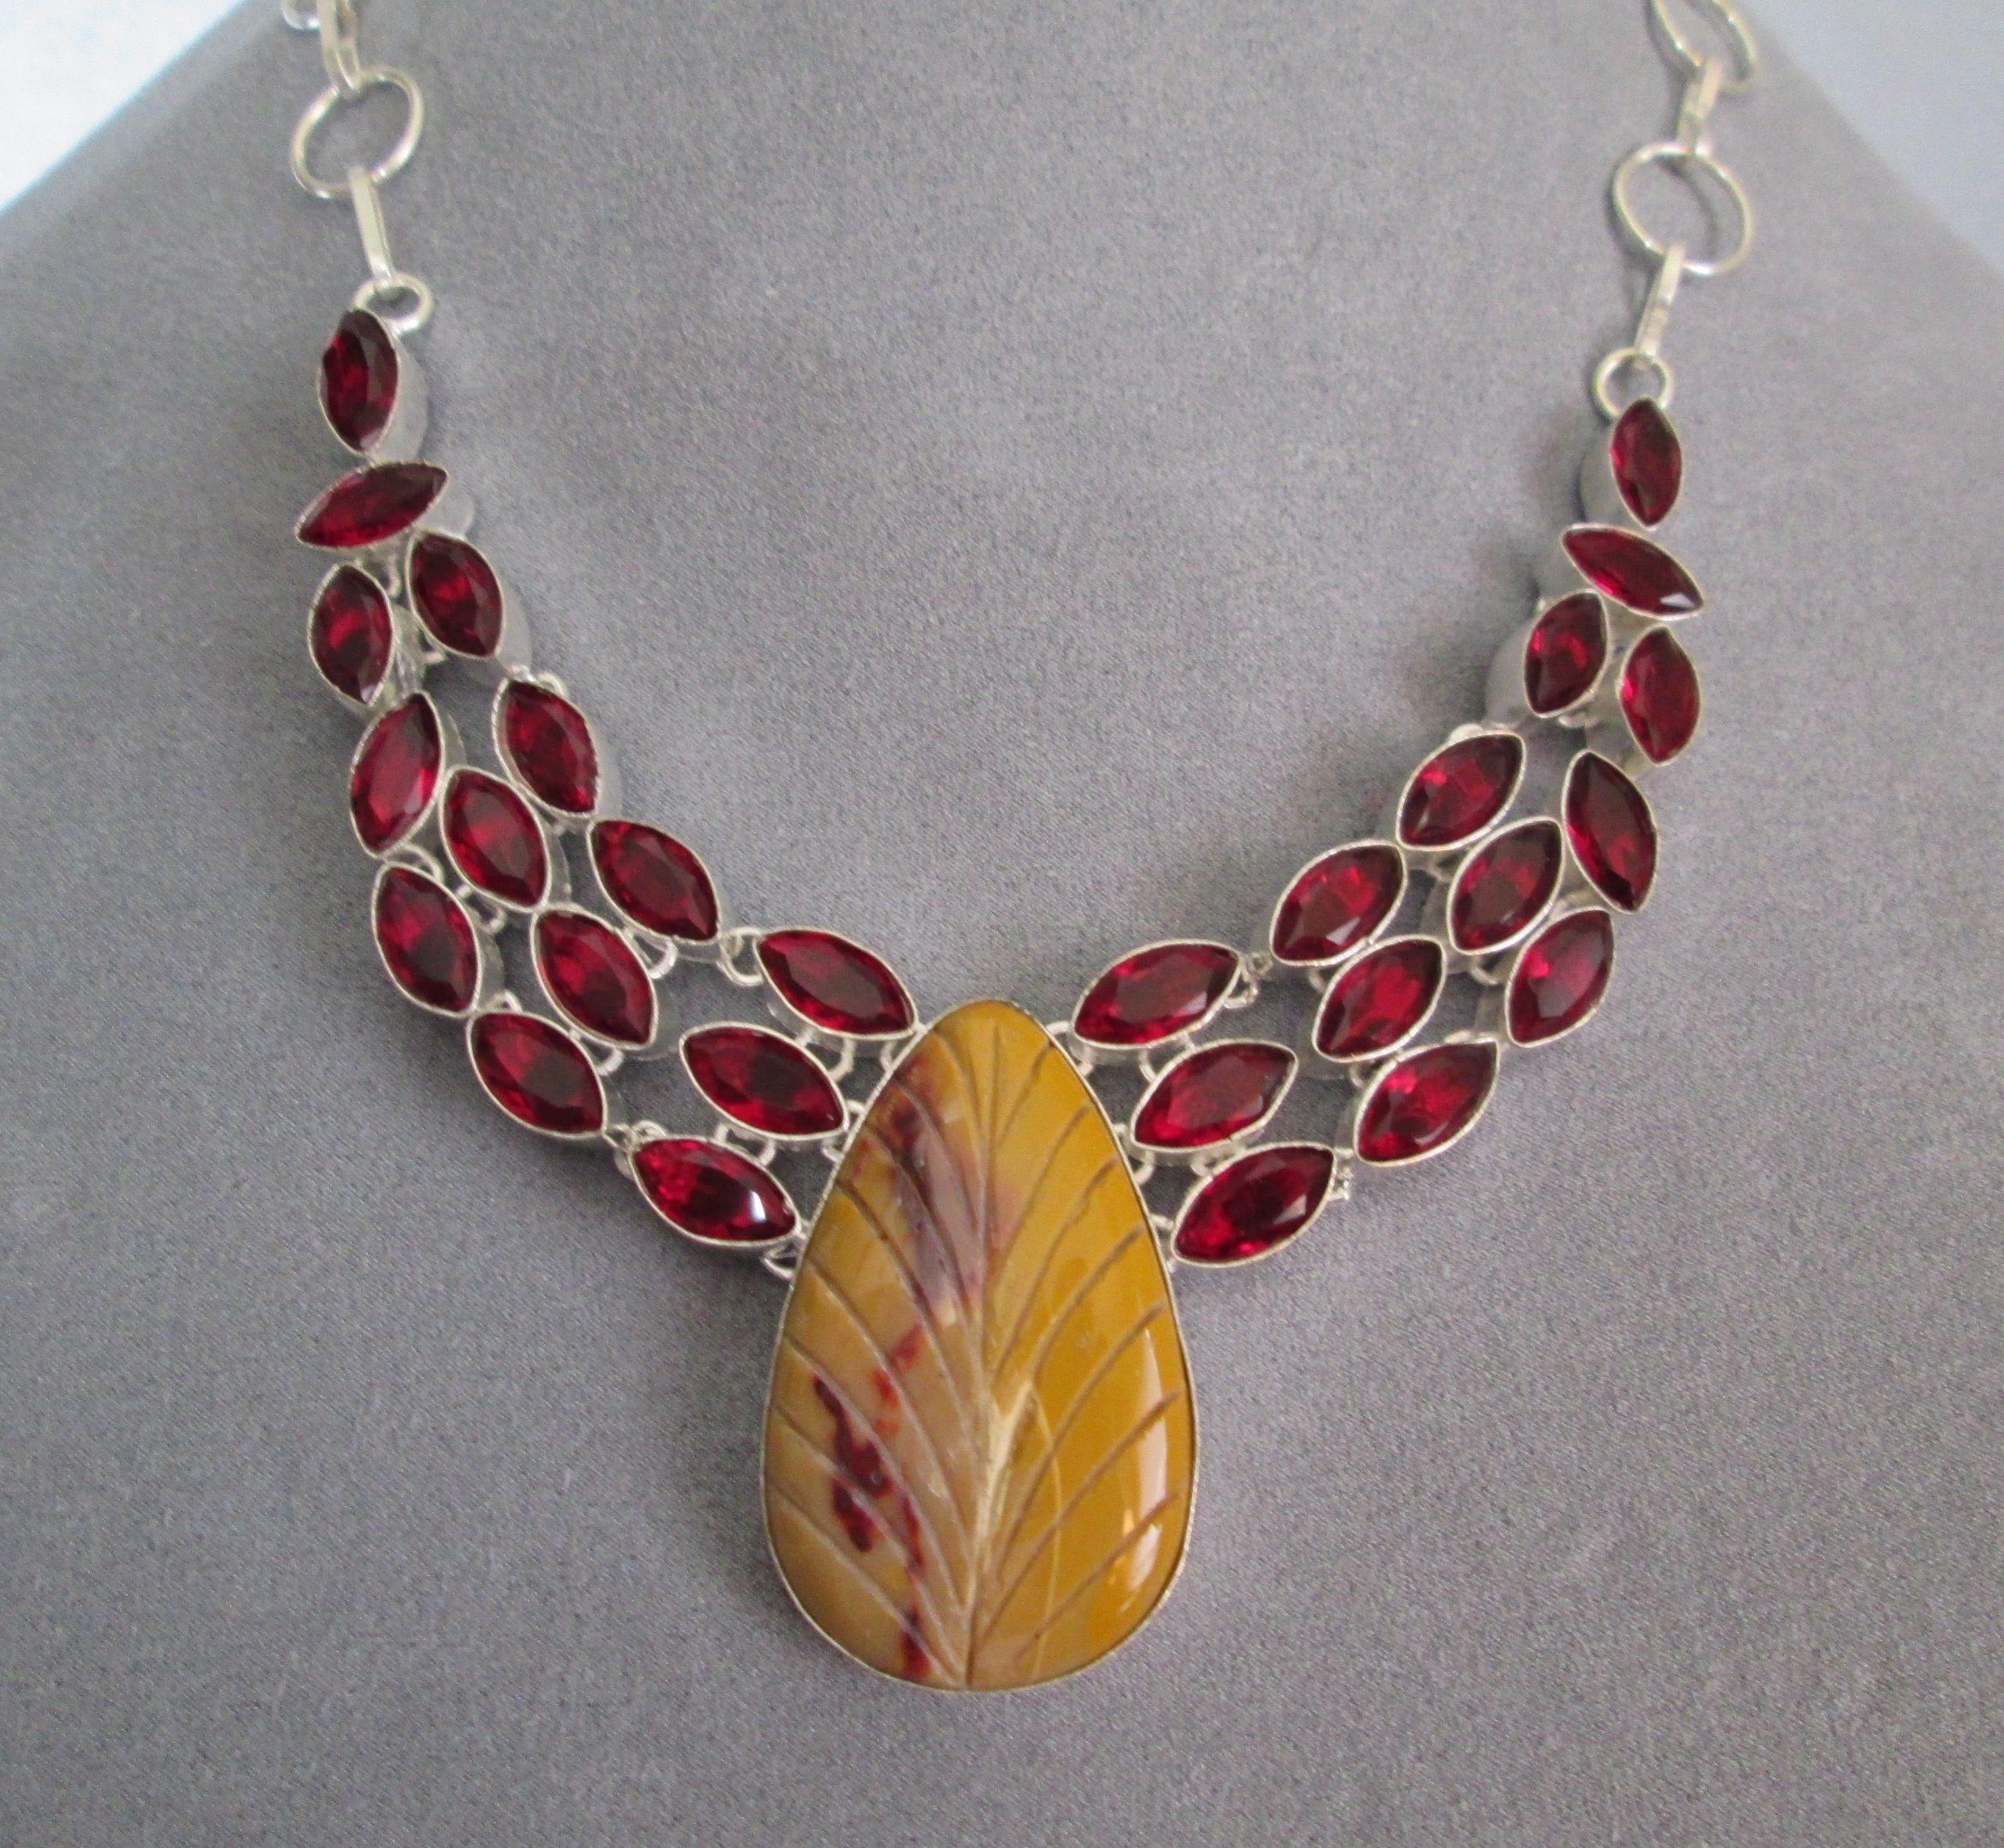 Mookaite Jasper Brass Shield Necklace by LM-inspired